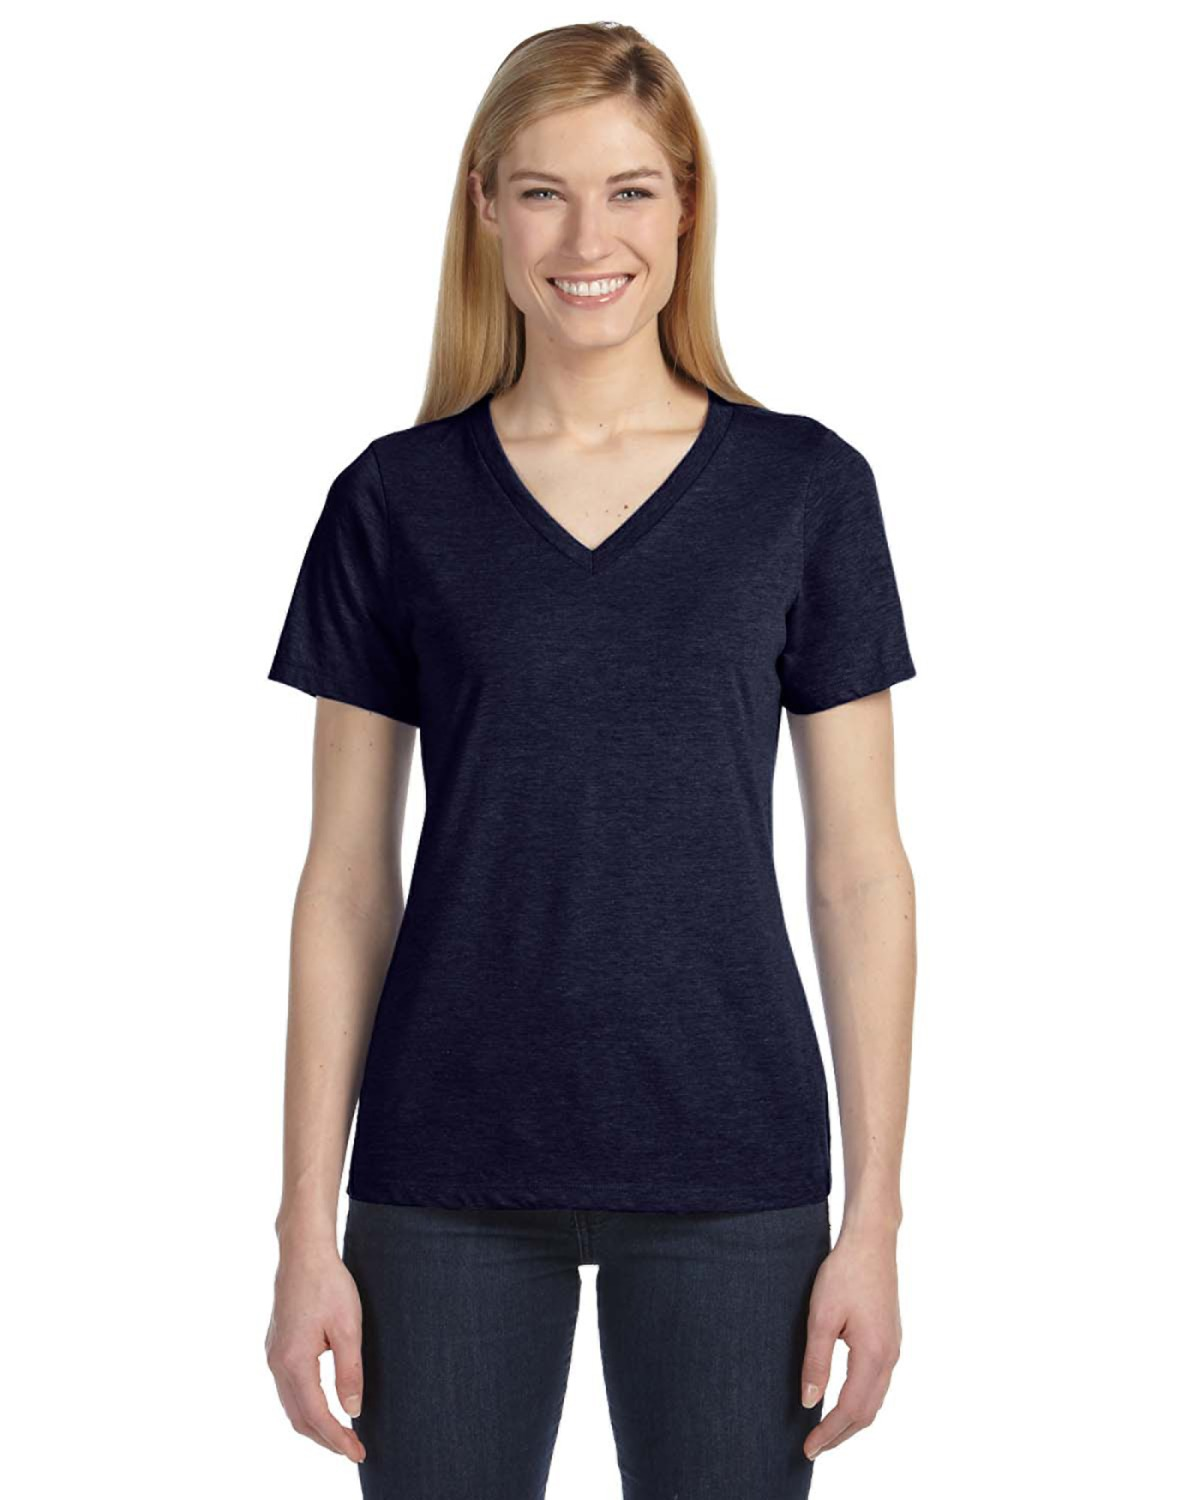 Bella + Canvas - 6405U Missy Made in the USA Jersey Short-Sleeve V-Neck T-Shirt